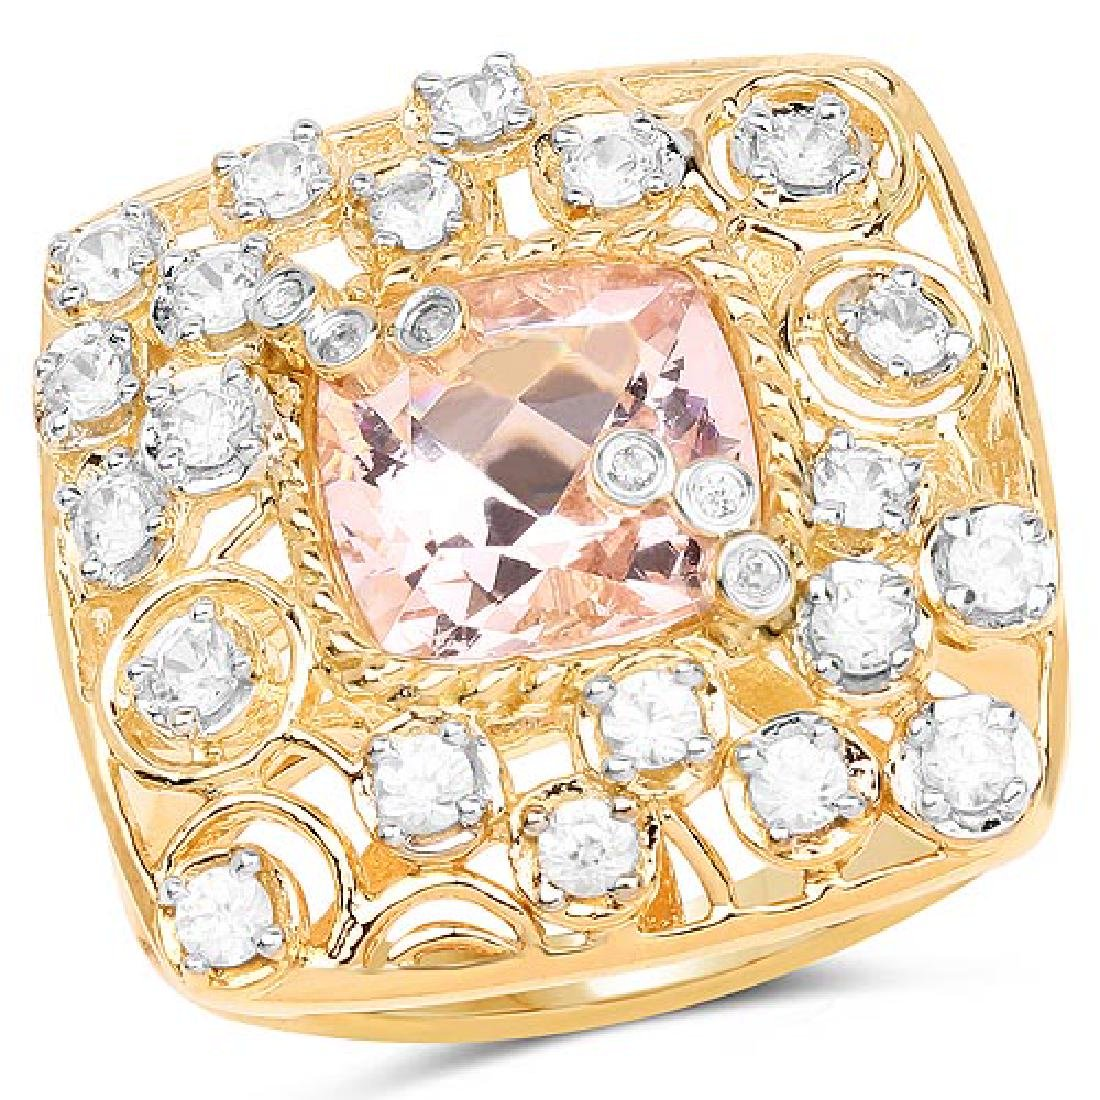 14K Yellow Gold Plated 3.33 Carat Synthartic Morganite